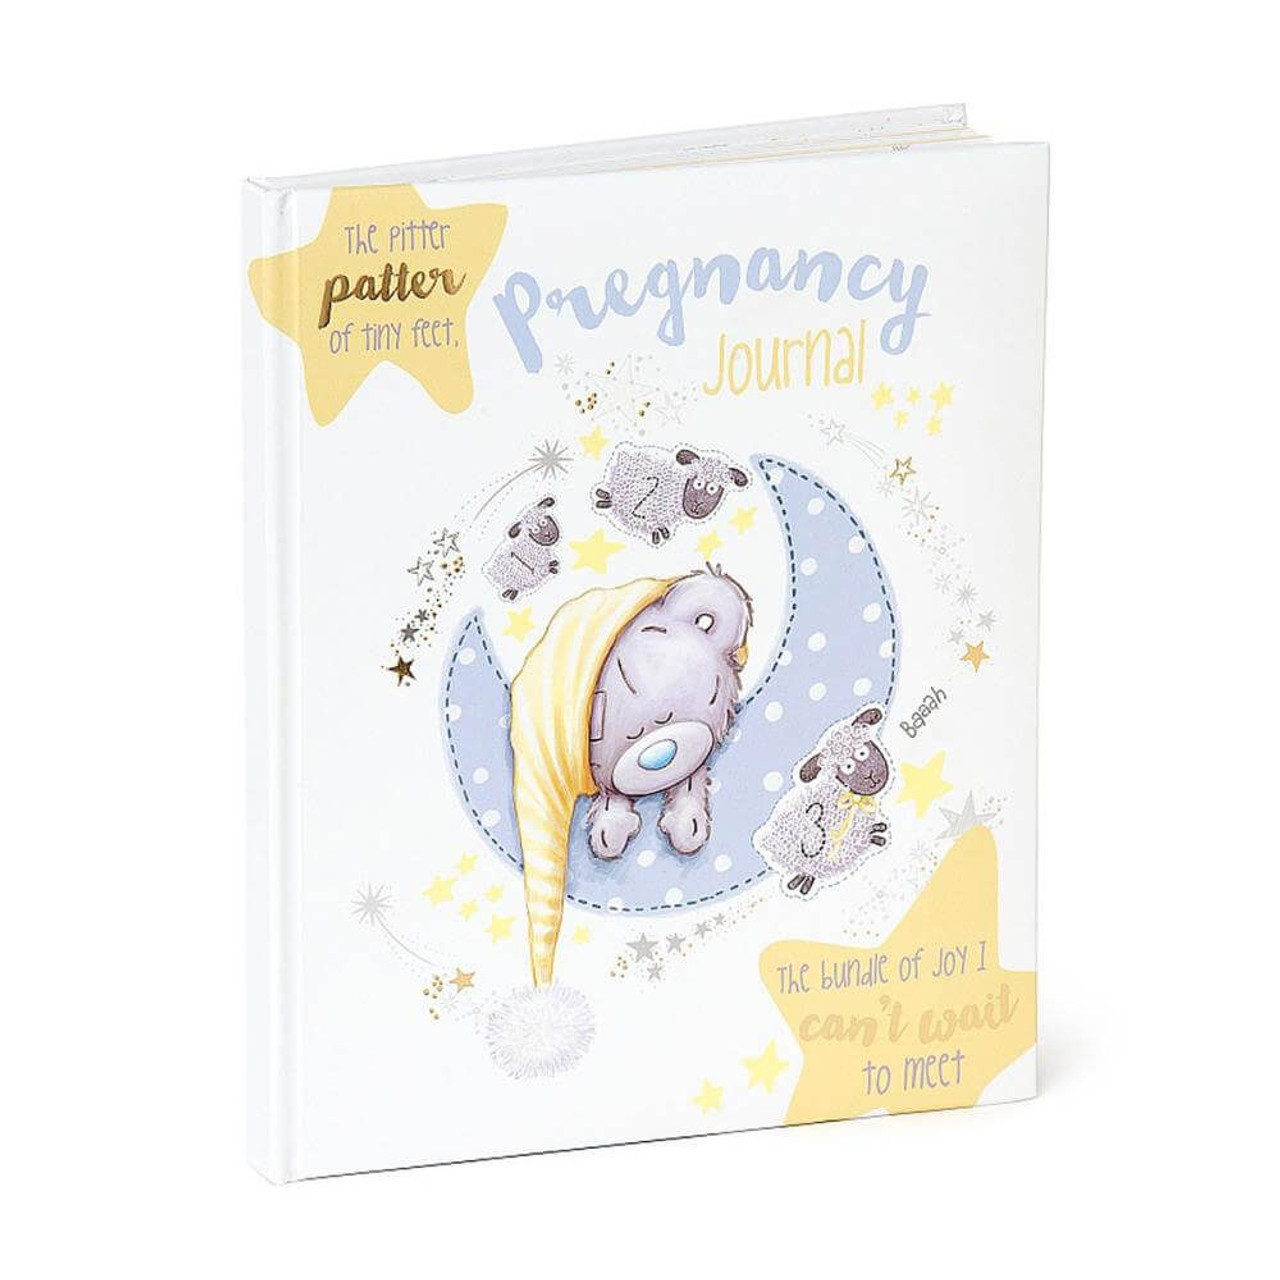 Tiny Tatty Teddy Pregnancy Journal at Baby Barn Discounts This beautiful Tiny Tatty Teddy keepsake hard cover book makes an ideal gift for the 'mum to be' and will help her treasure those special moments during pregnancy.